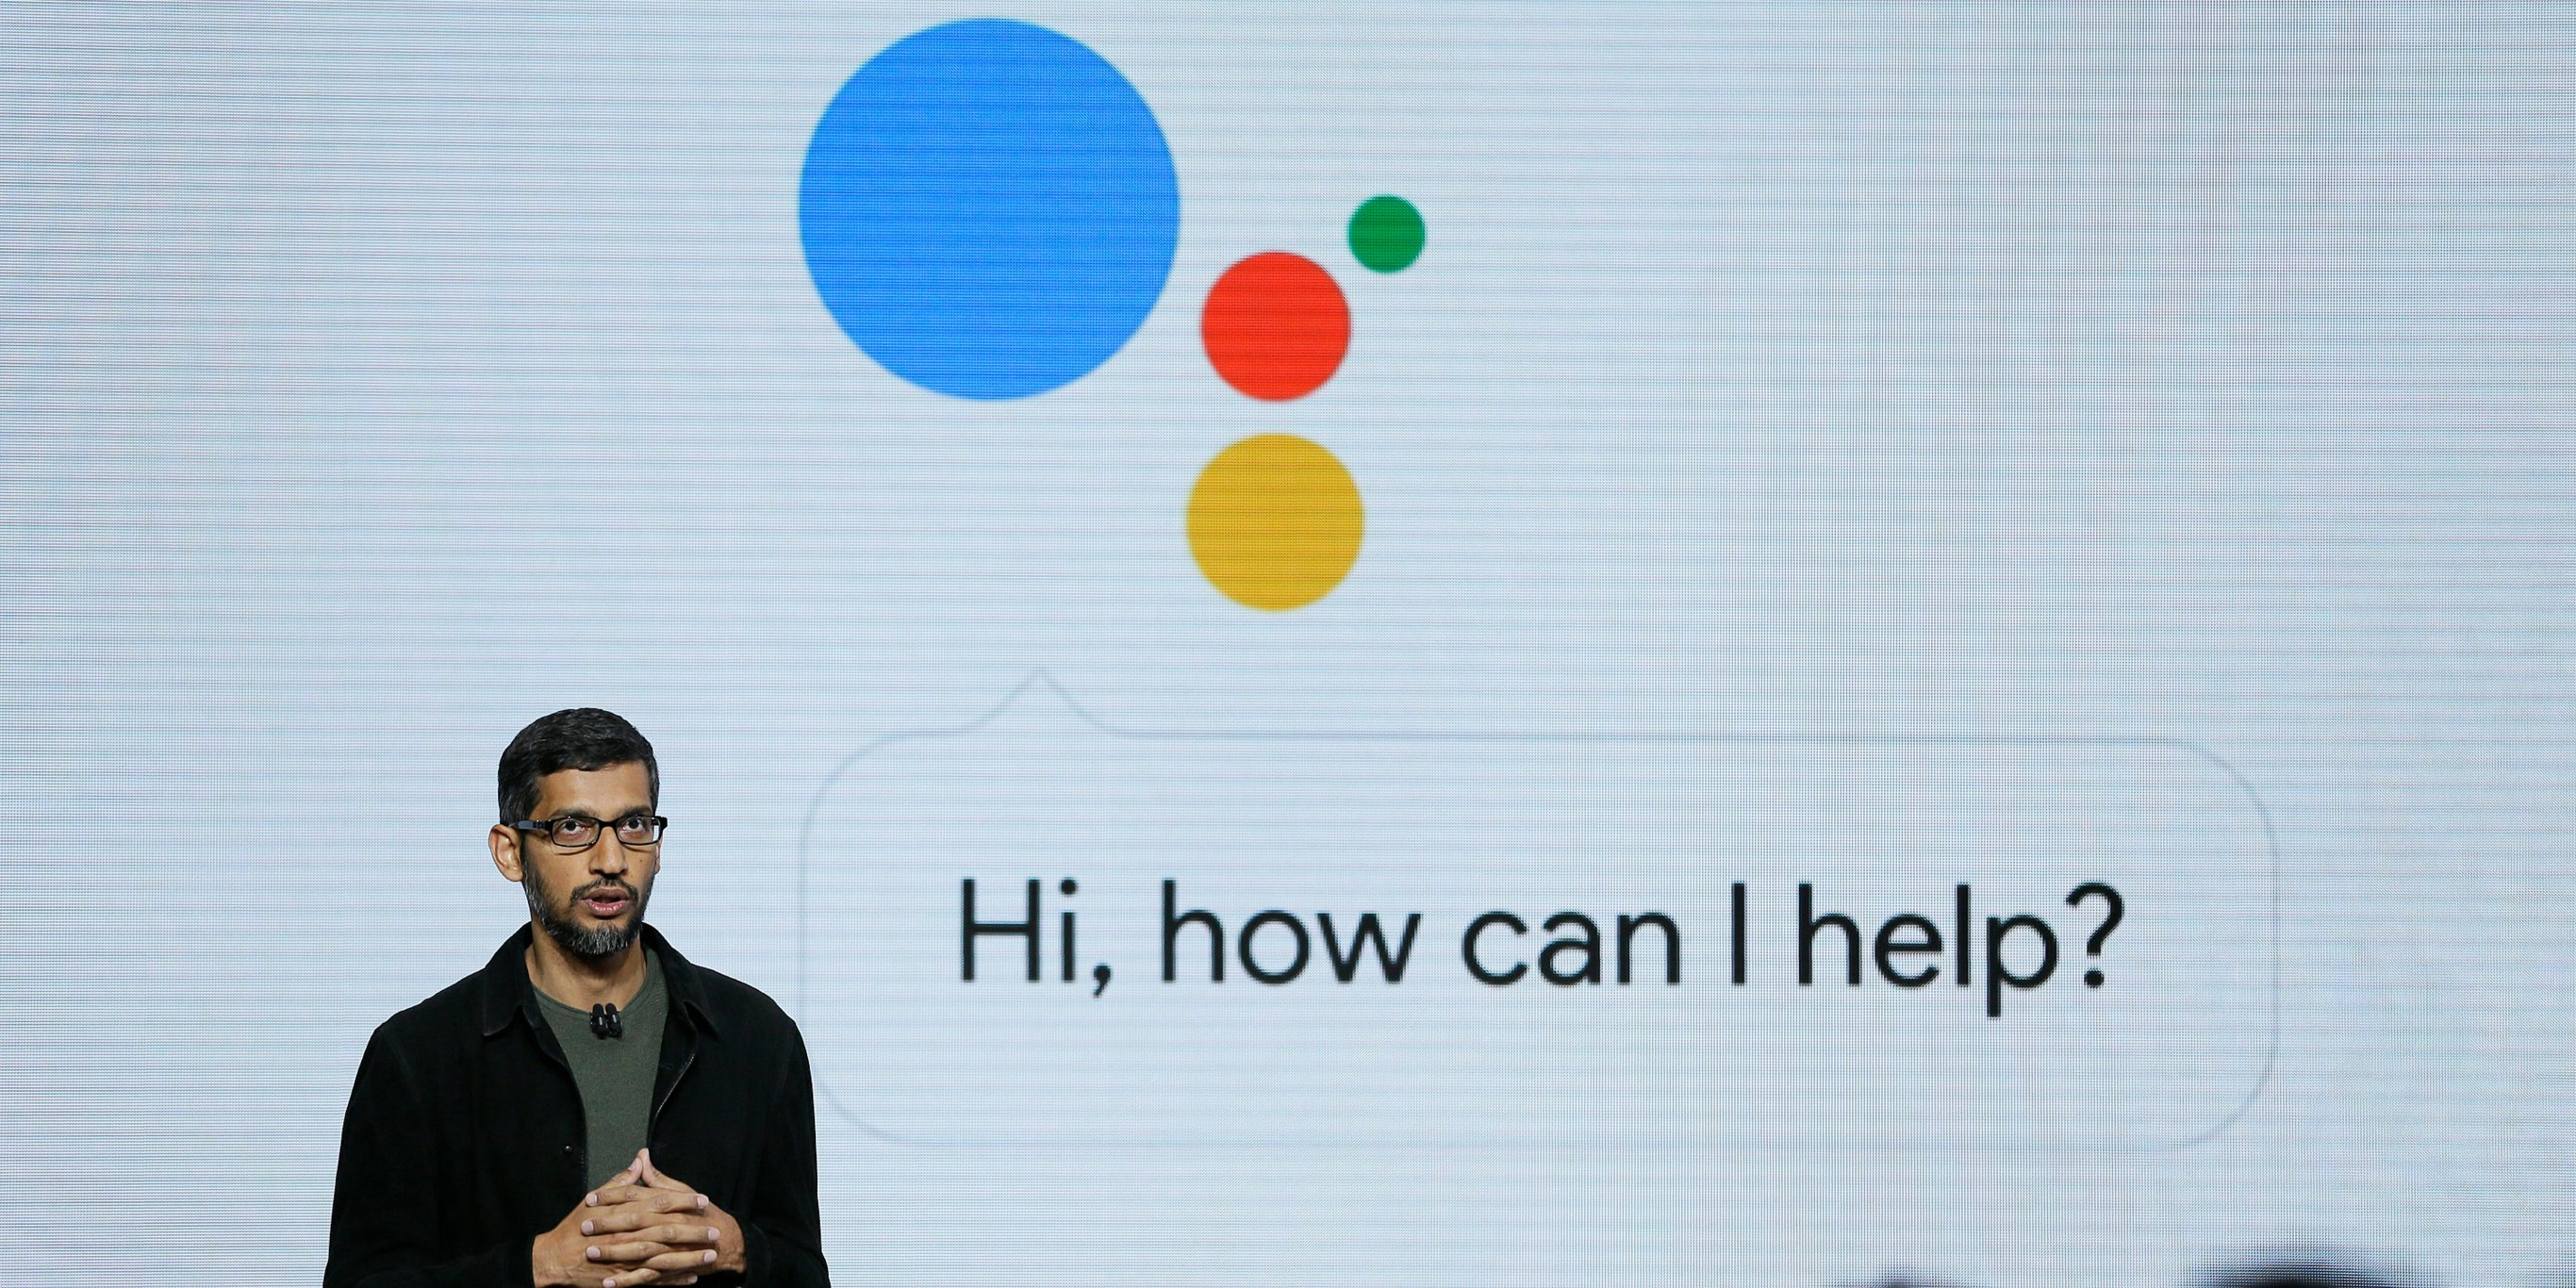 A UN study suggested it's sexist for voice assistants like Siri or Alexa to have female voices — but Google says it wanted to use a male voice from the very beginning (GOOG, GOOGL, AAPL)